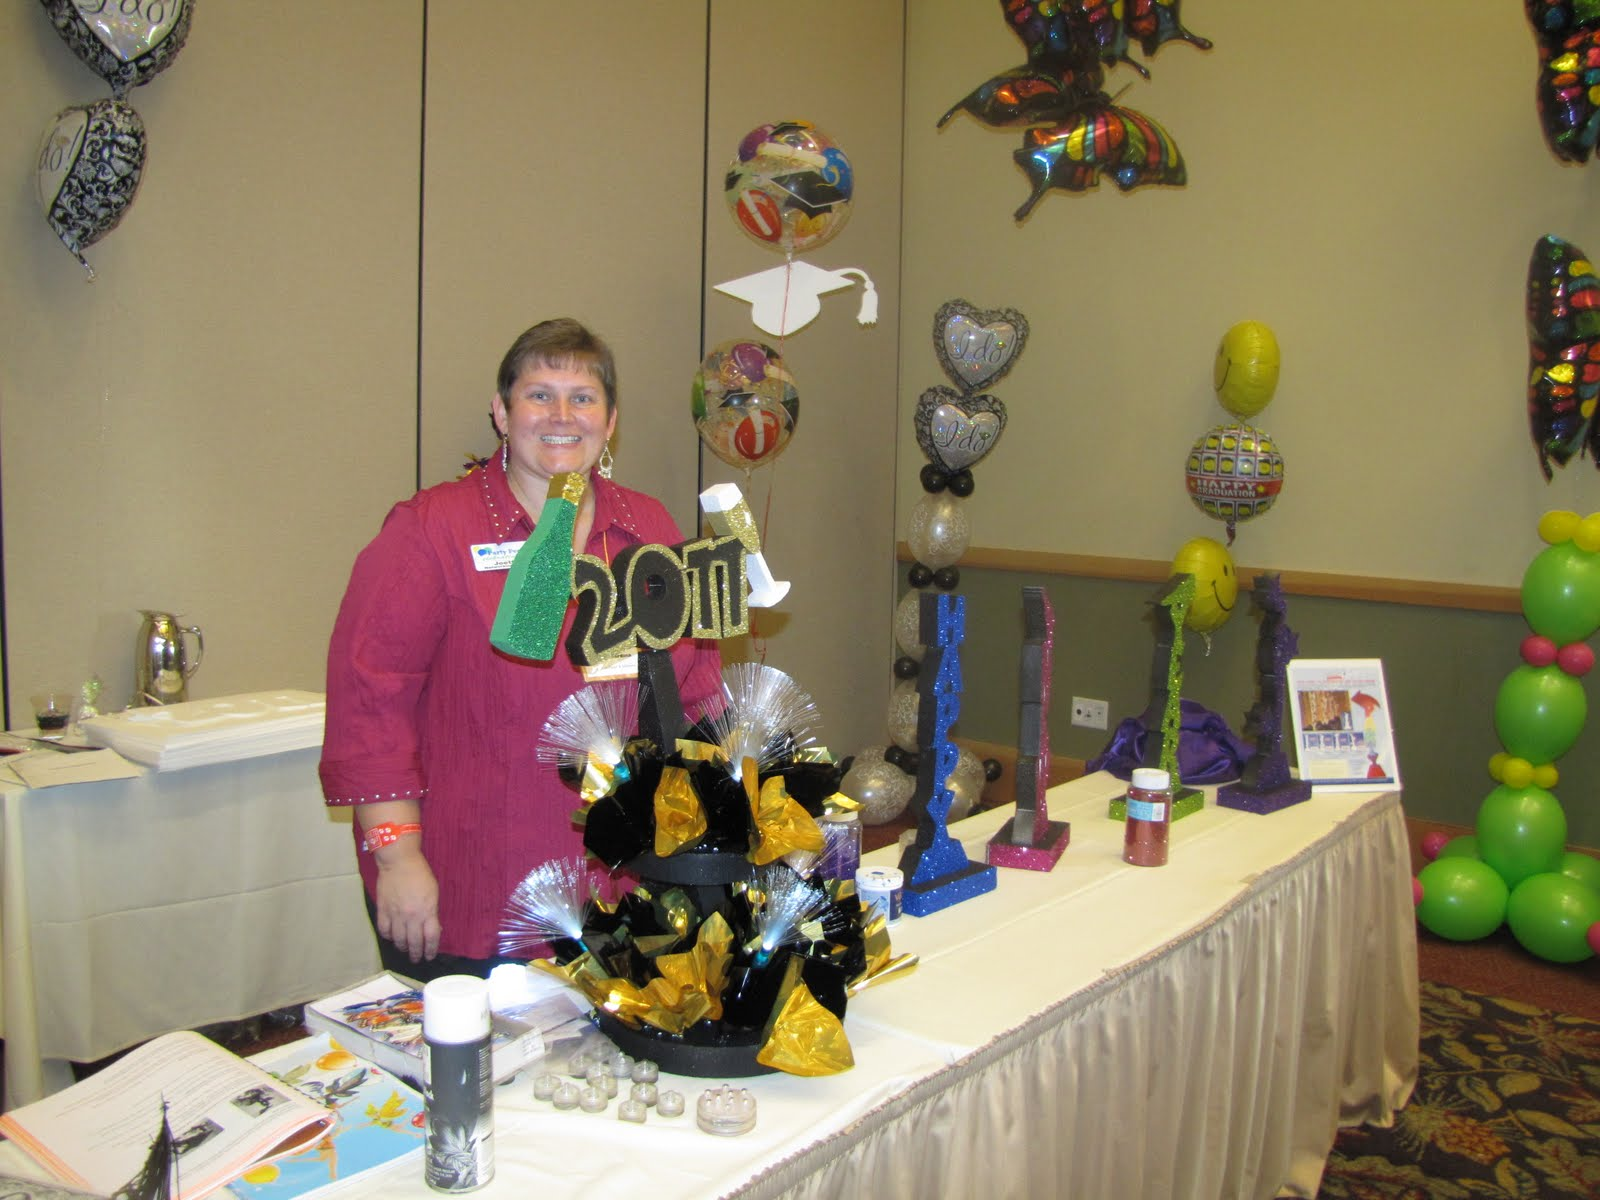 Cake Decorating Classes In Lakeland Fl : Party People Event Decorating Company: January 2011